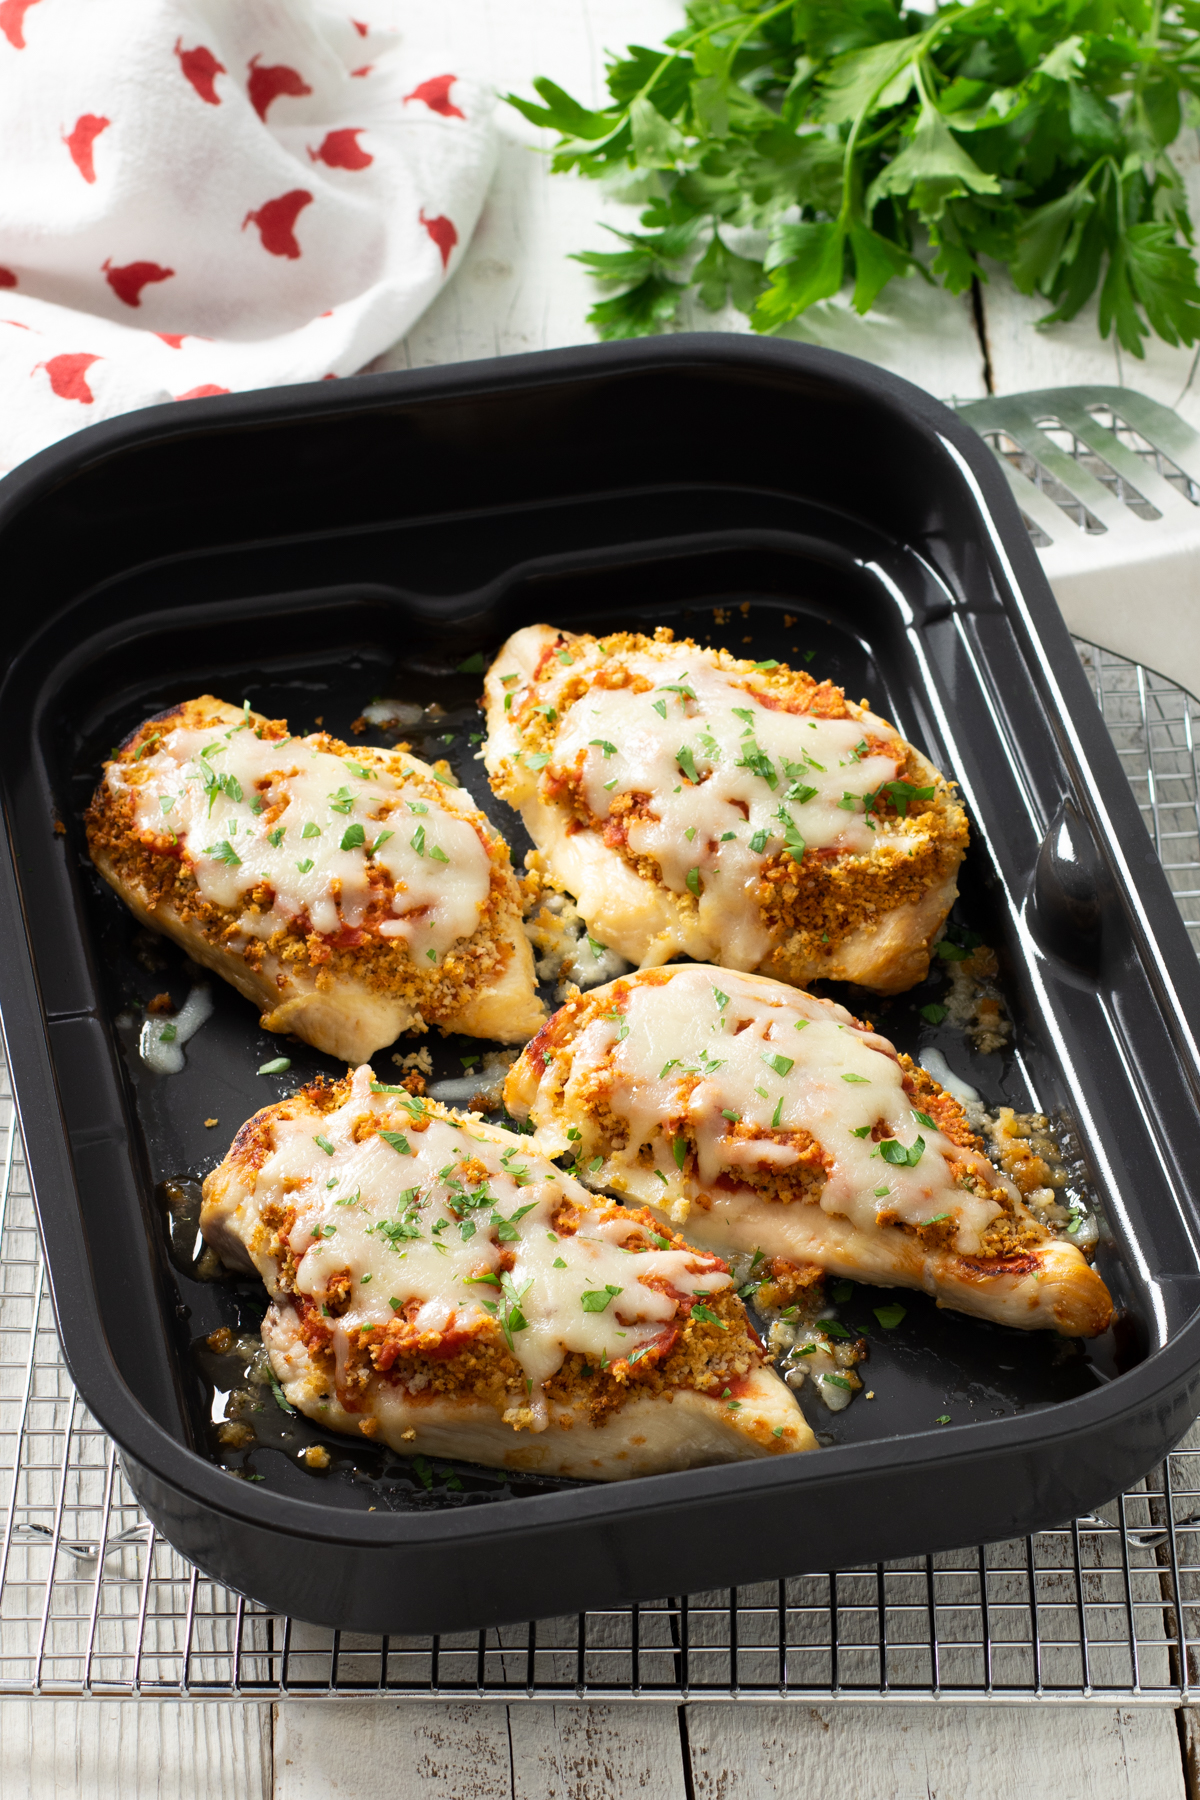 Four chicken breasts in an air fryer tray, topped with breadcrumbs, tomato sauce and melted mozzarella.